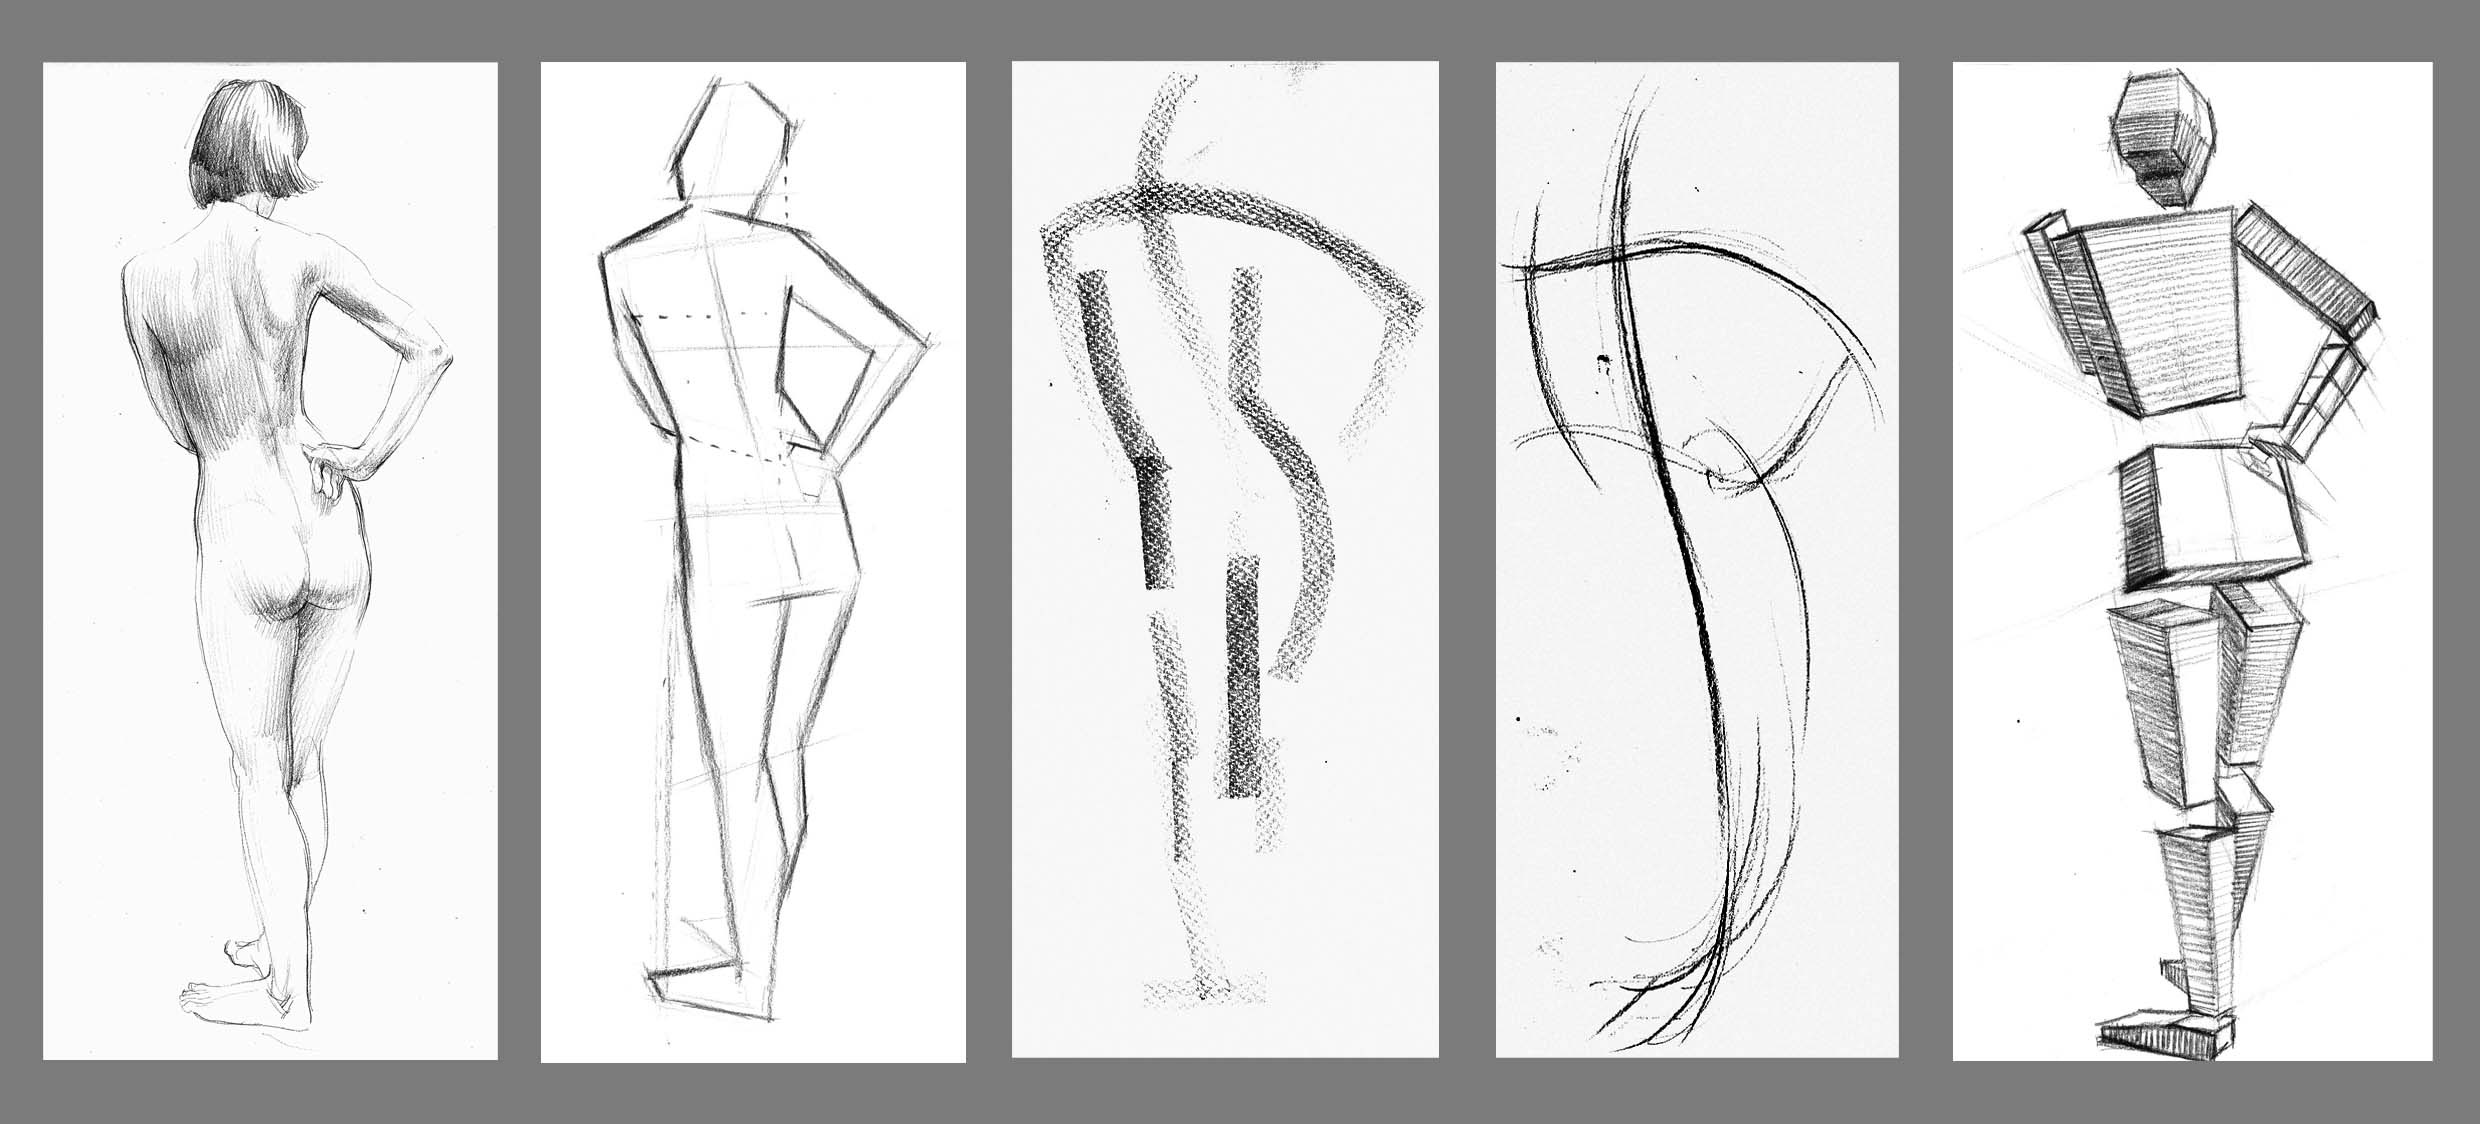 These images represent some of the aspects to be considered in life drawing: Accuracy, Design, Rhythm/animation, Form